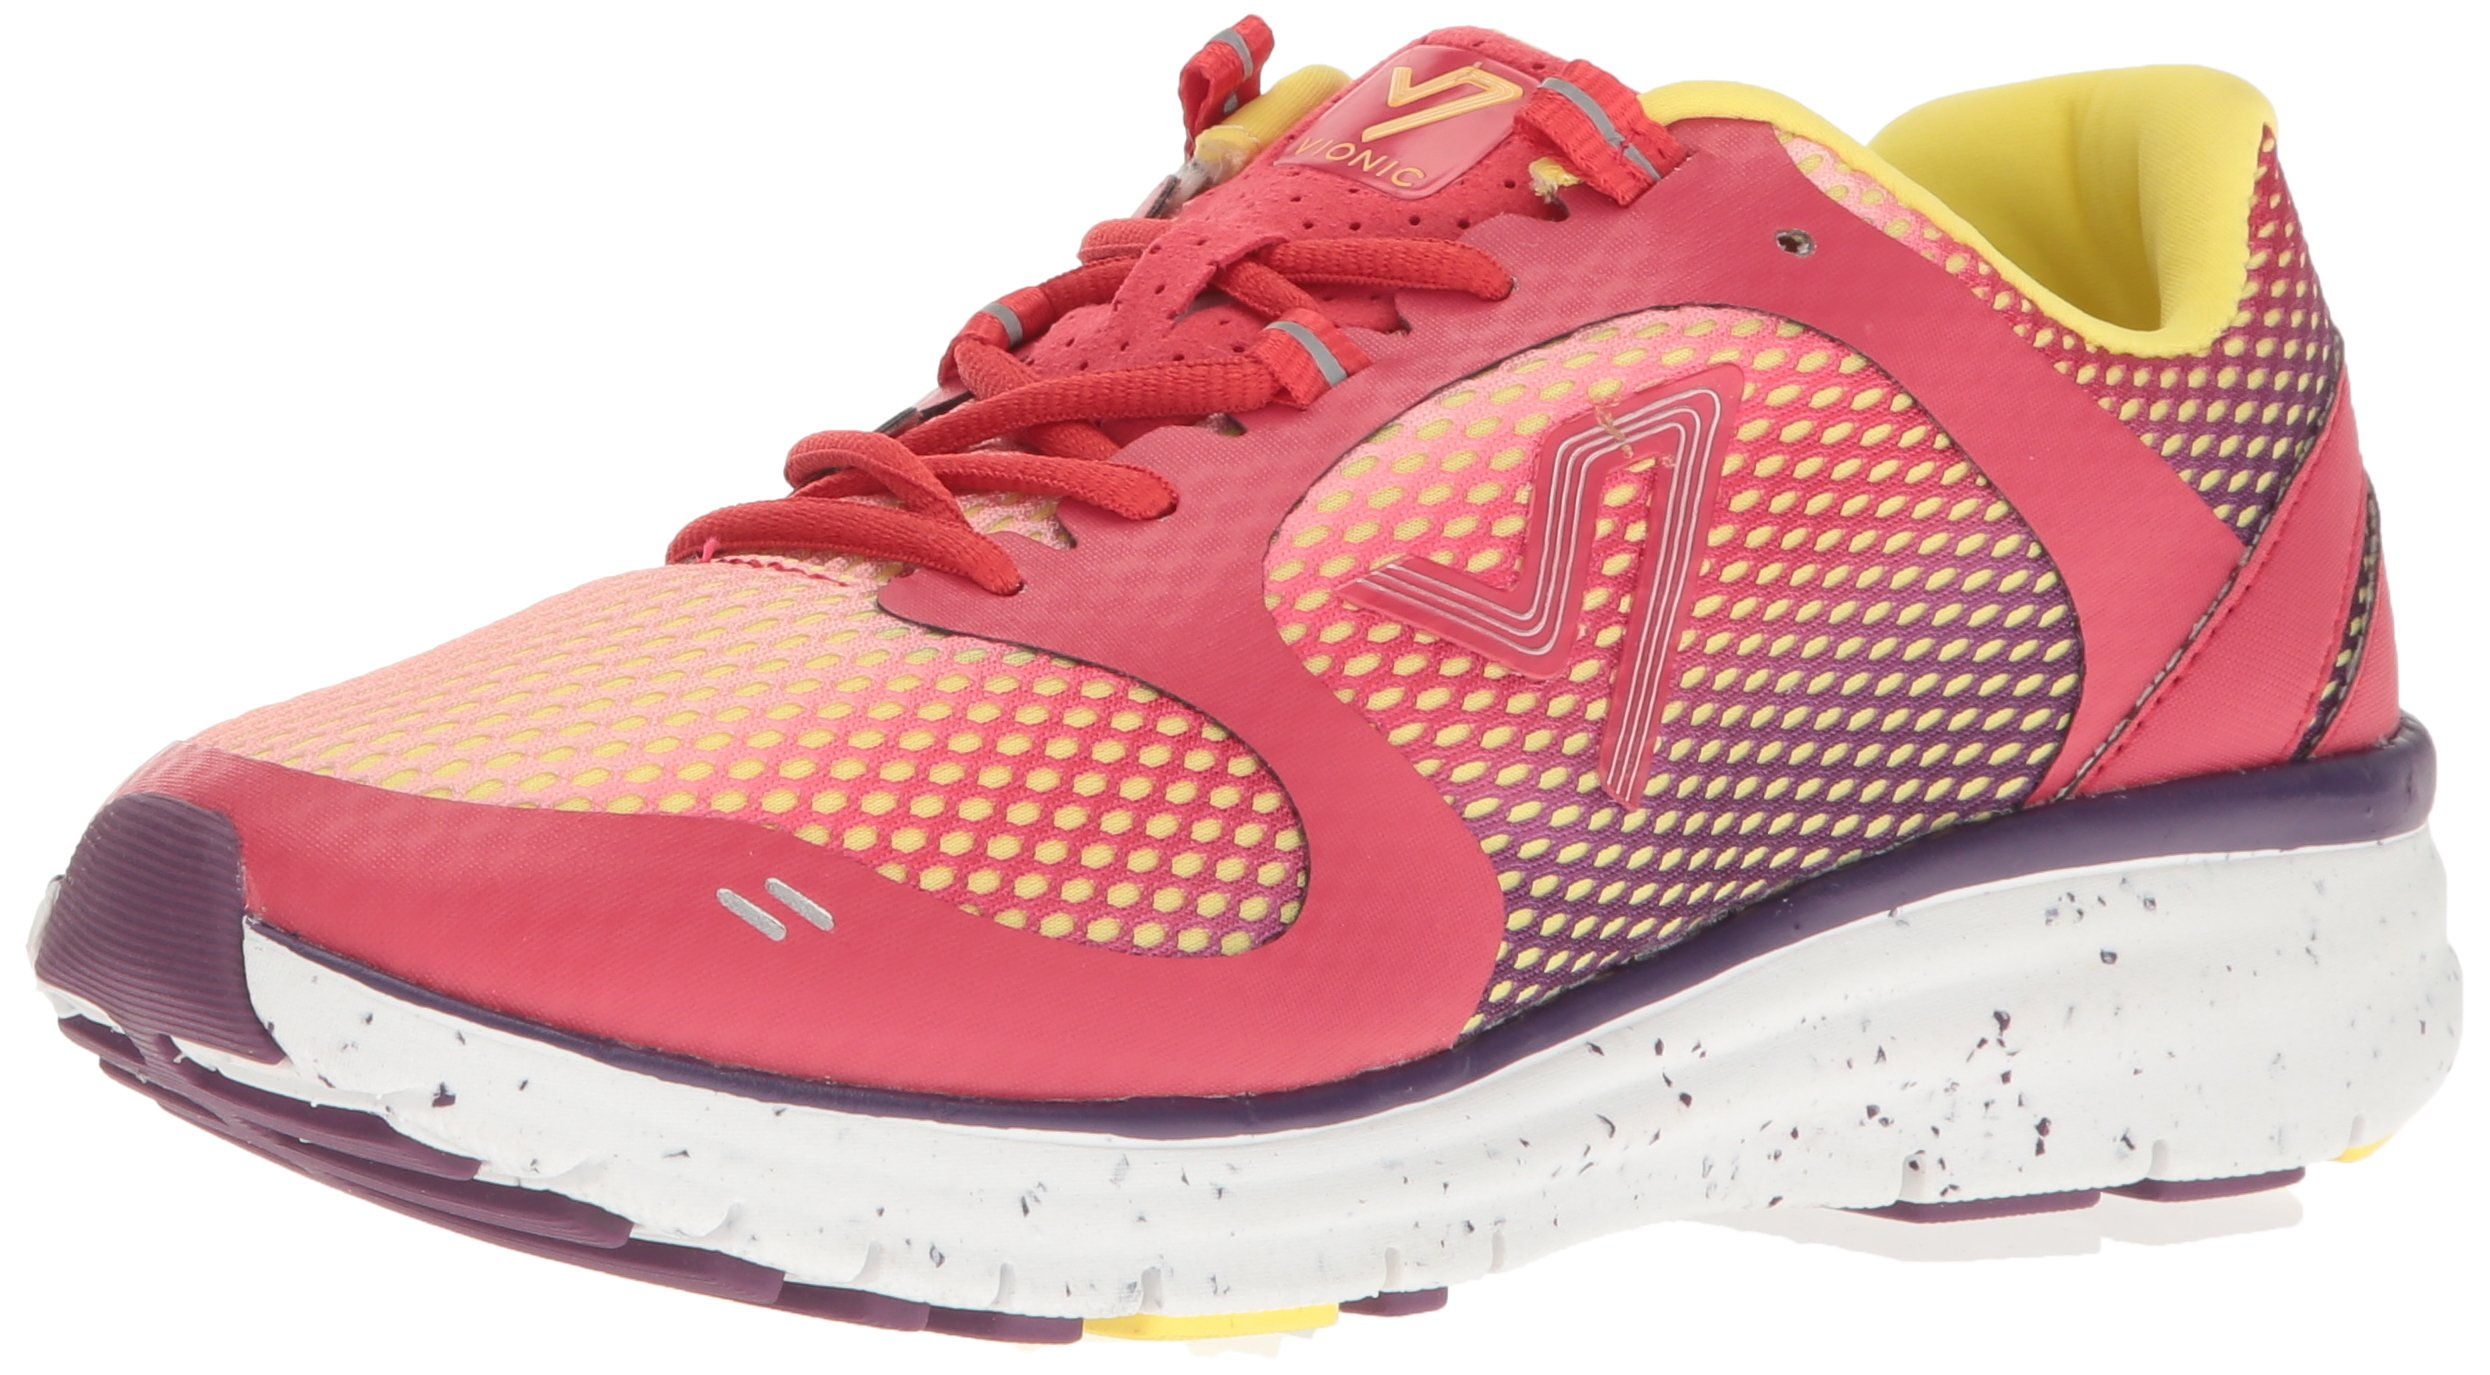 Vionic Women's Elation Active Sneaker Pink Ombre 8.5 M by Vionic